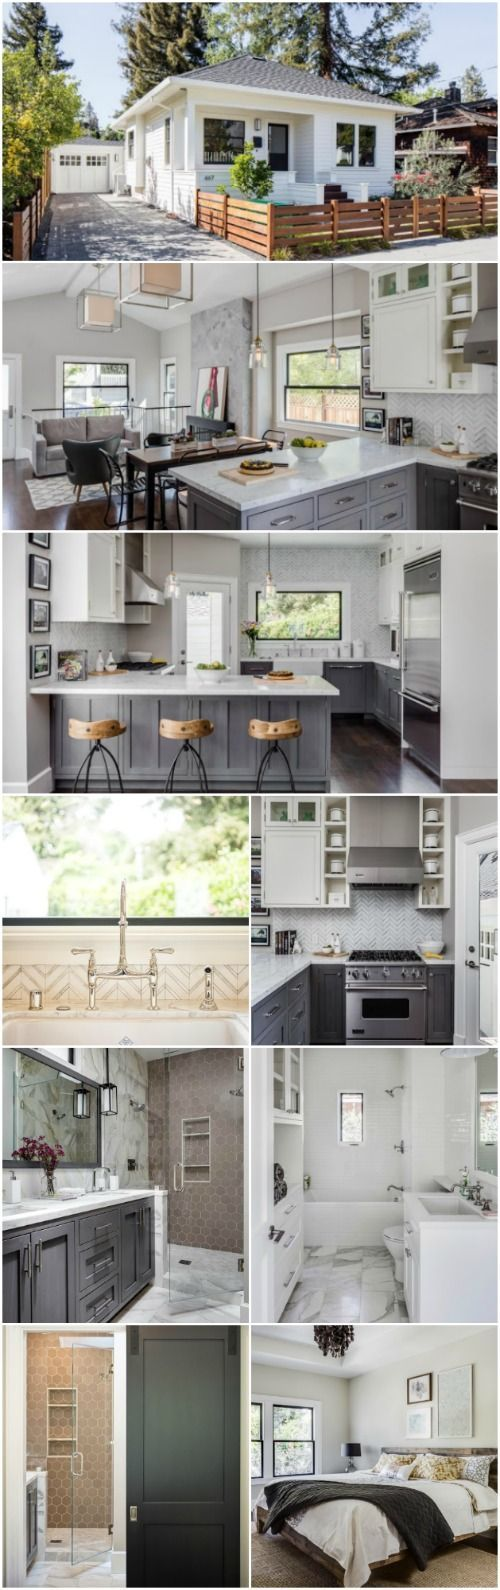 Home interior design for small houses - Californian Interior Designer Designs Dreamy Tiny House In Napa Valley Lindsay Chambers Has Created A